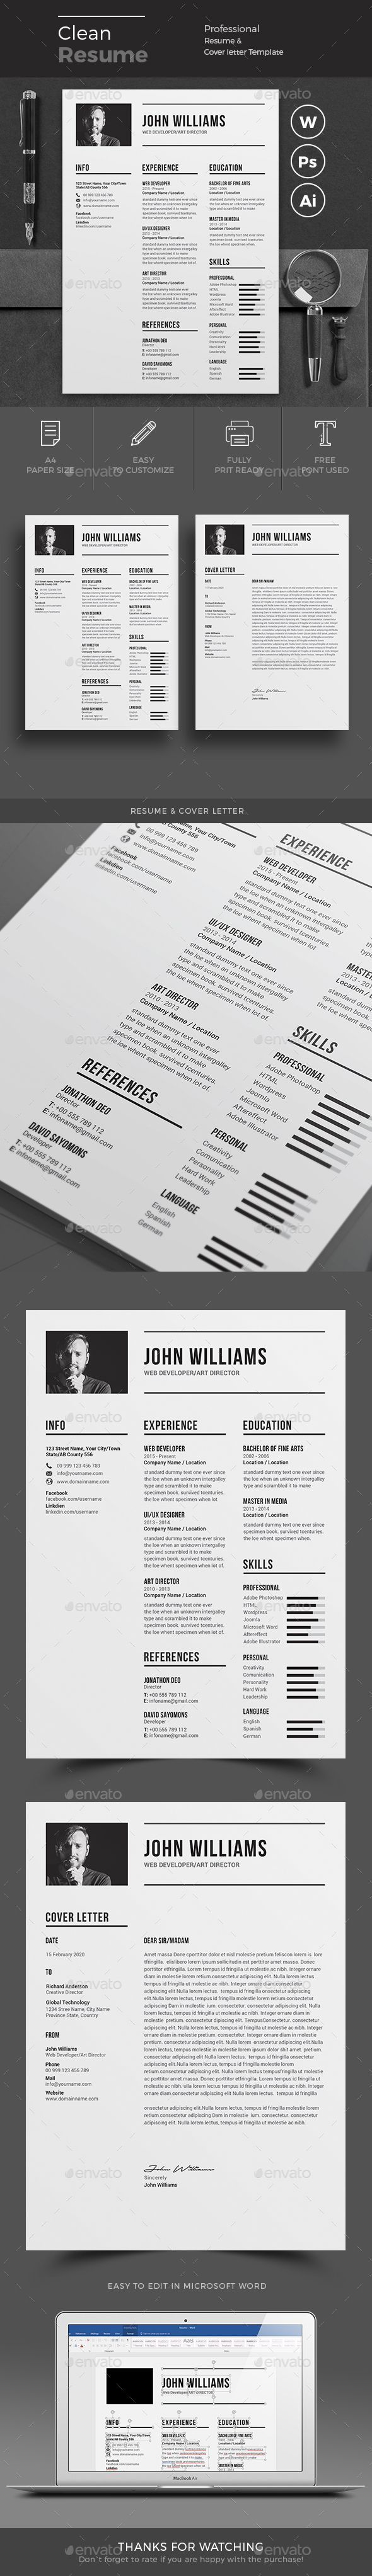 Resume Cv Templates Free Download%0A howto write a cover letter